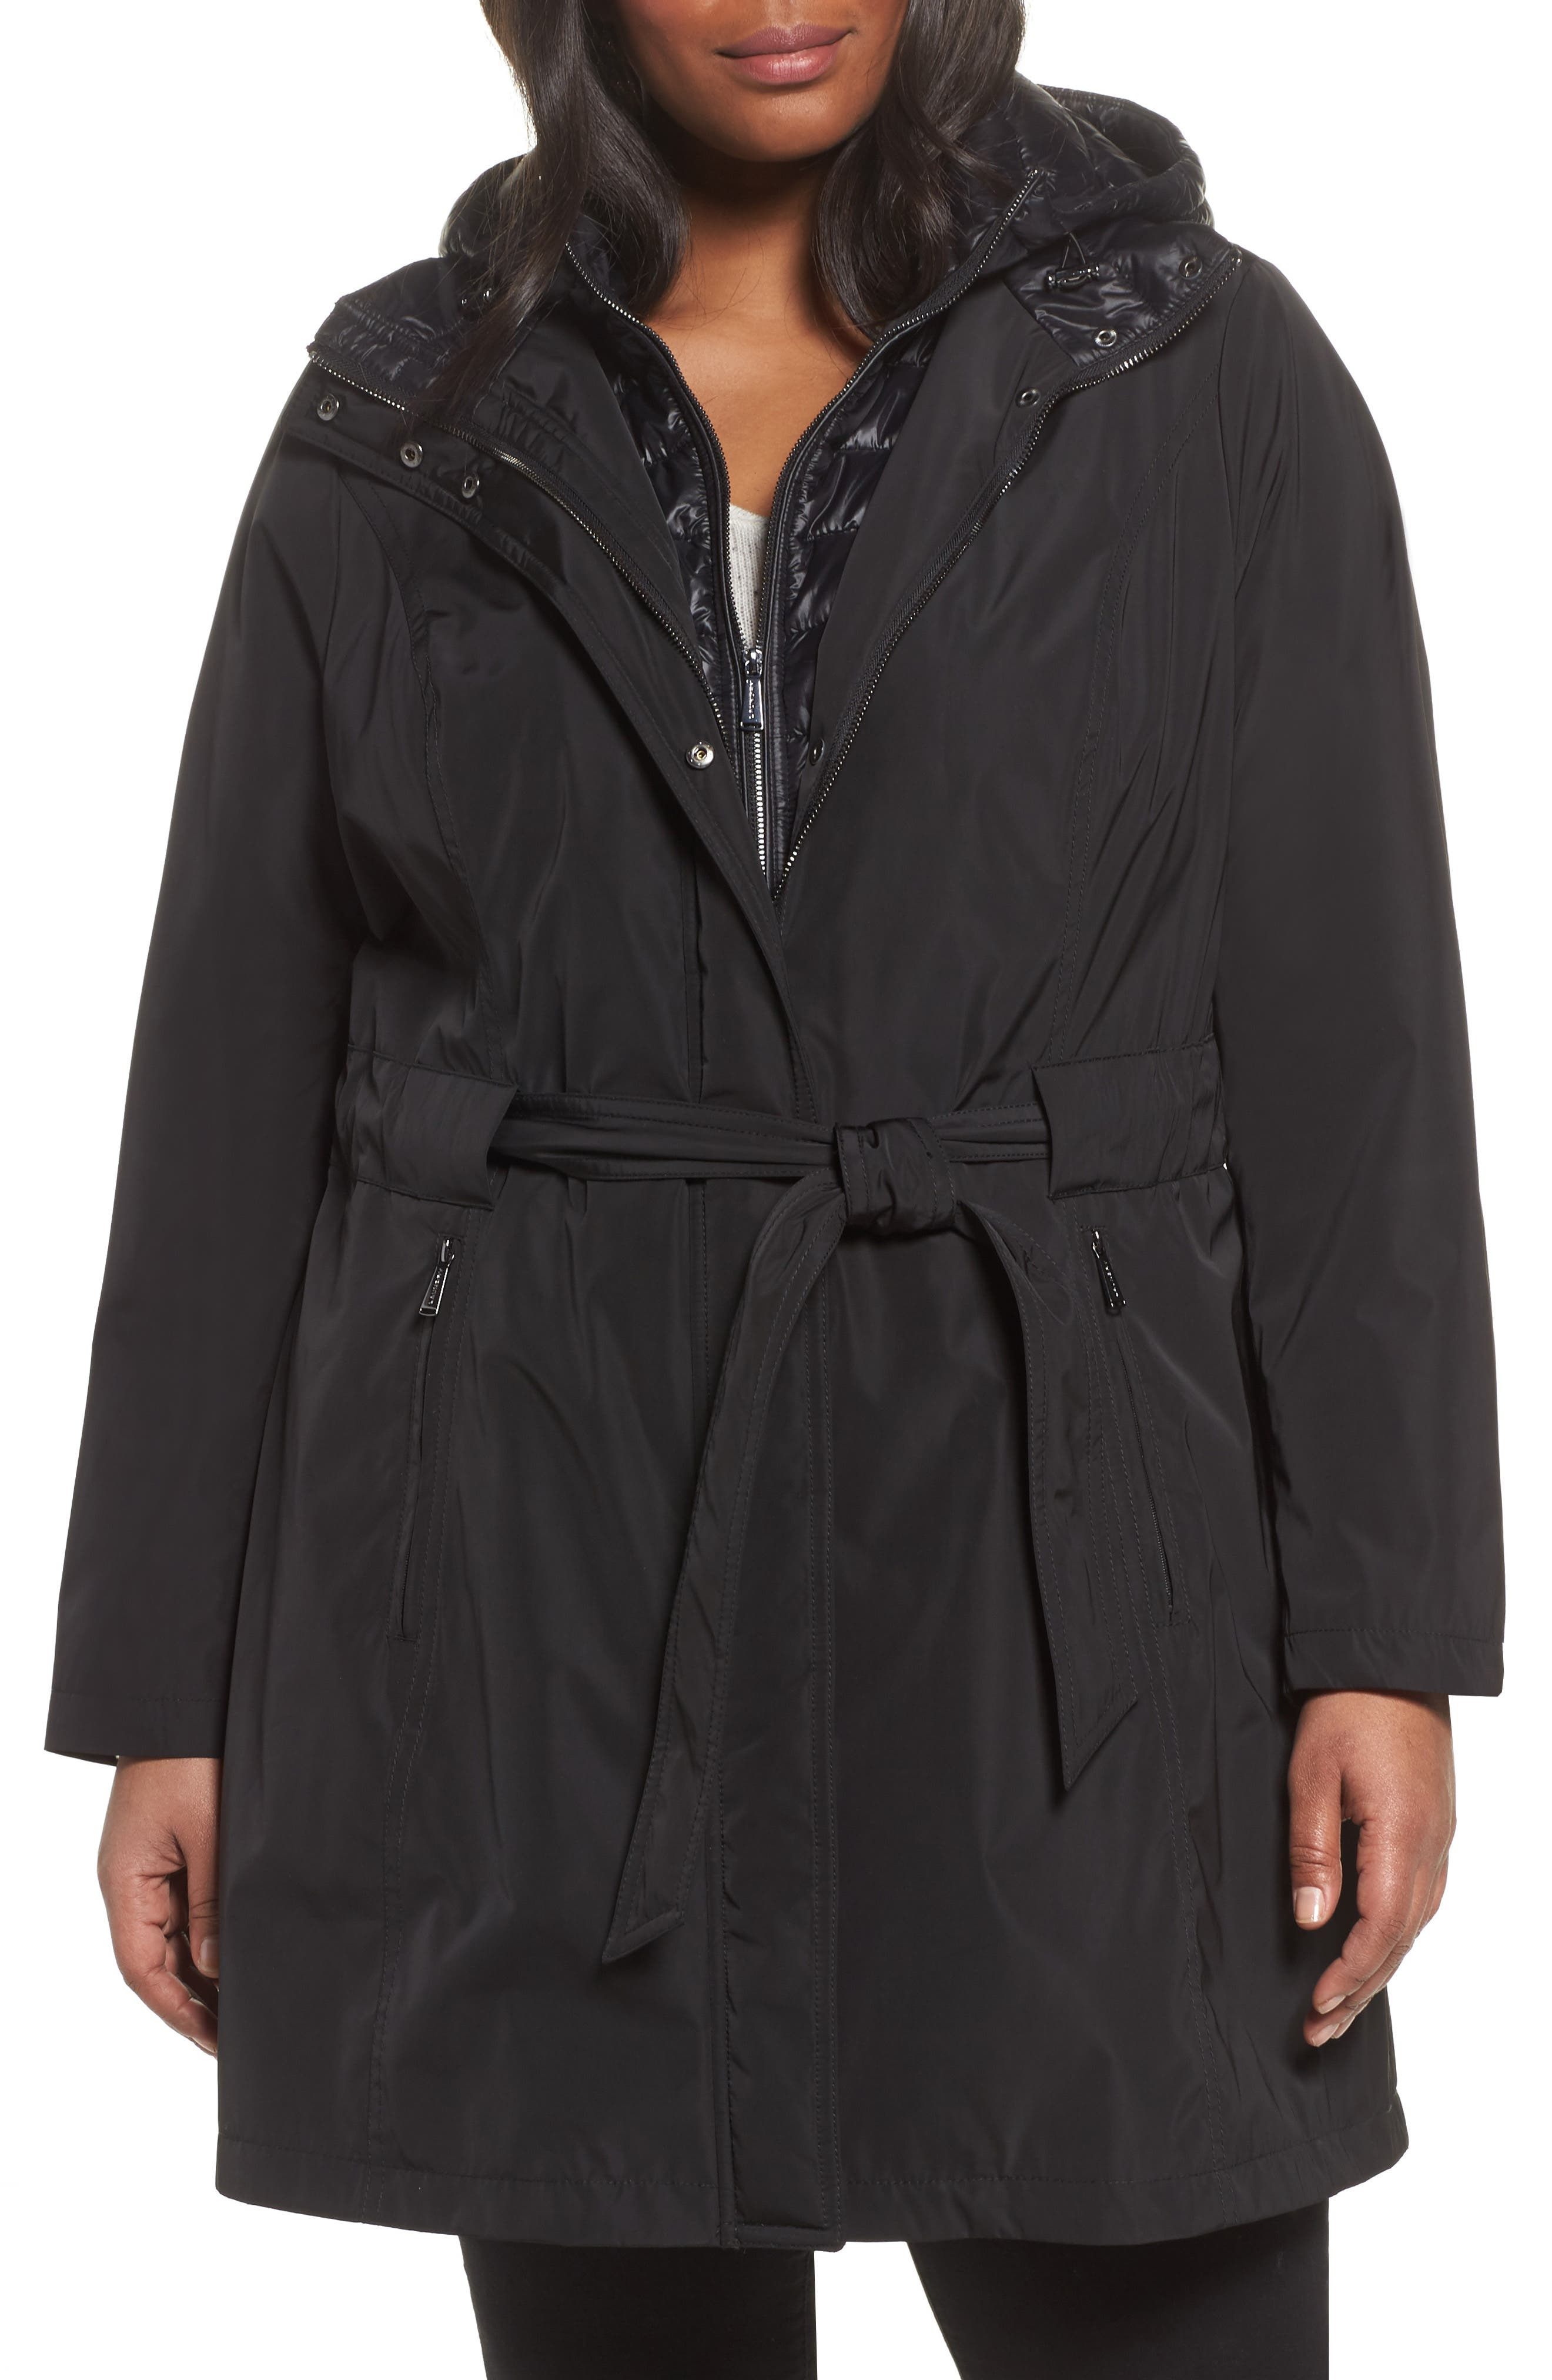 Main Image - Laundry by Shelli Segal Water Resistant Hooded Coat with Puffer Bib Inset (Plus Size)